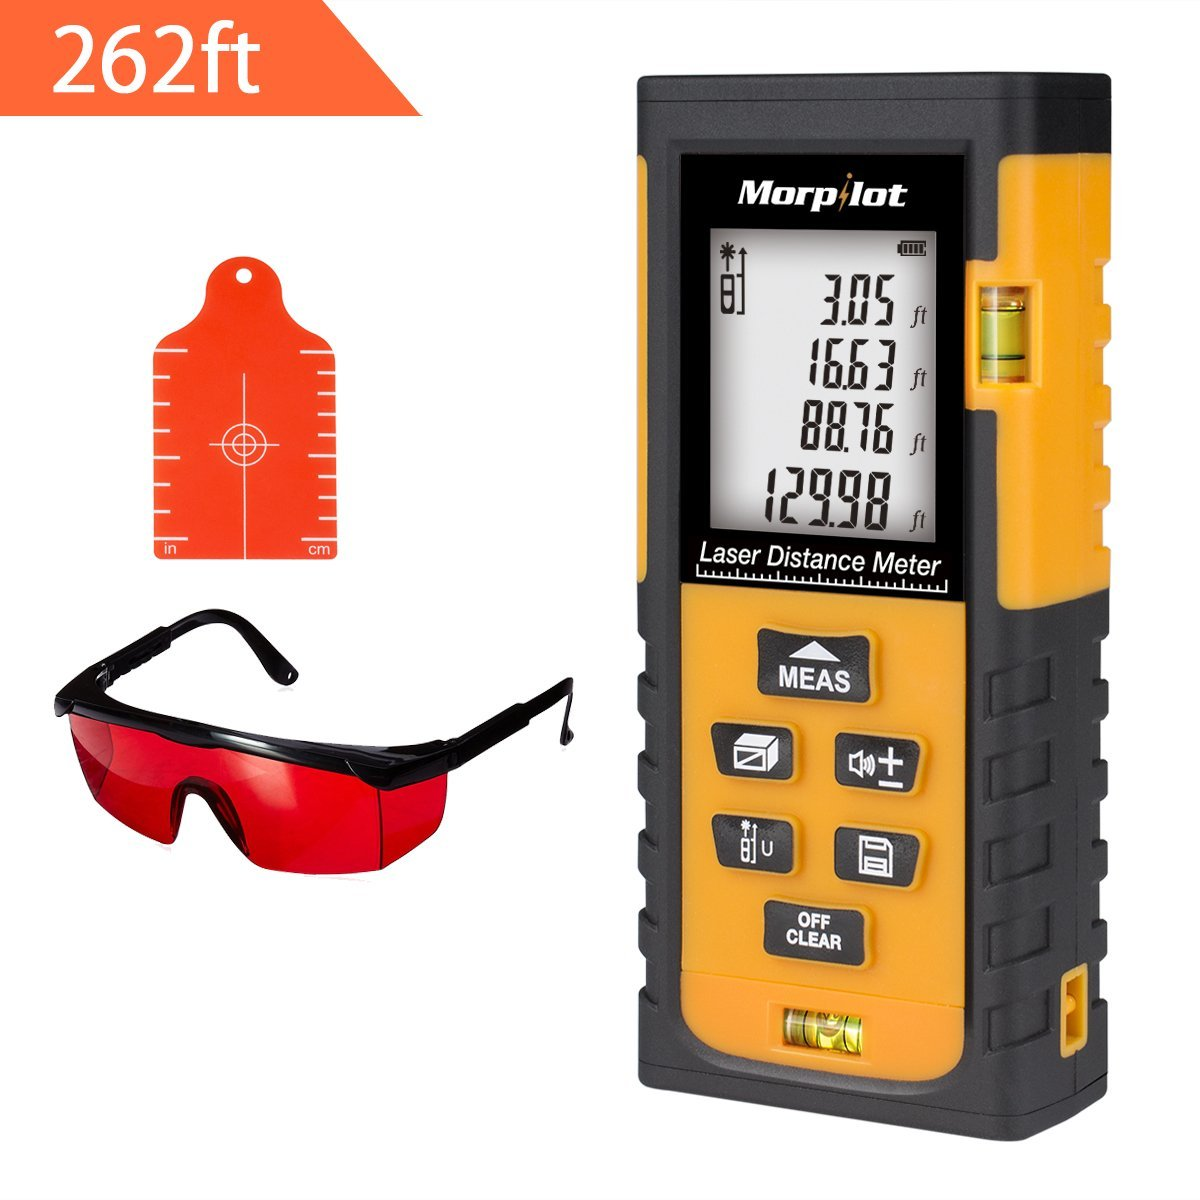 262ft Laser Measuring Tool - Morpilot Laser Tape Measure with Target Plate & Enhancing Glasses, Laser Measuring Device with Pythagorean Mode, Measure Distance, Area, Volume Calculation